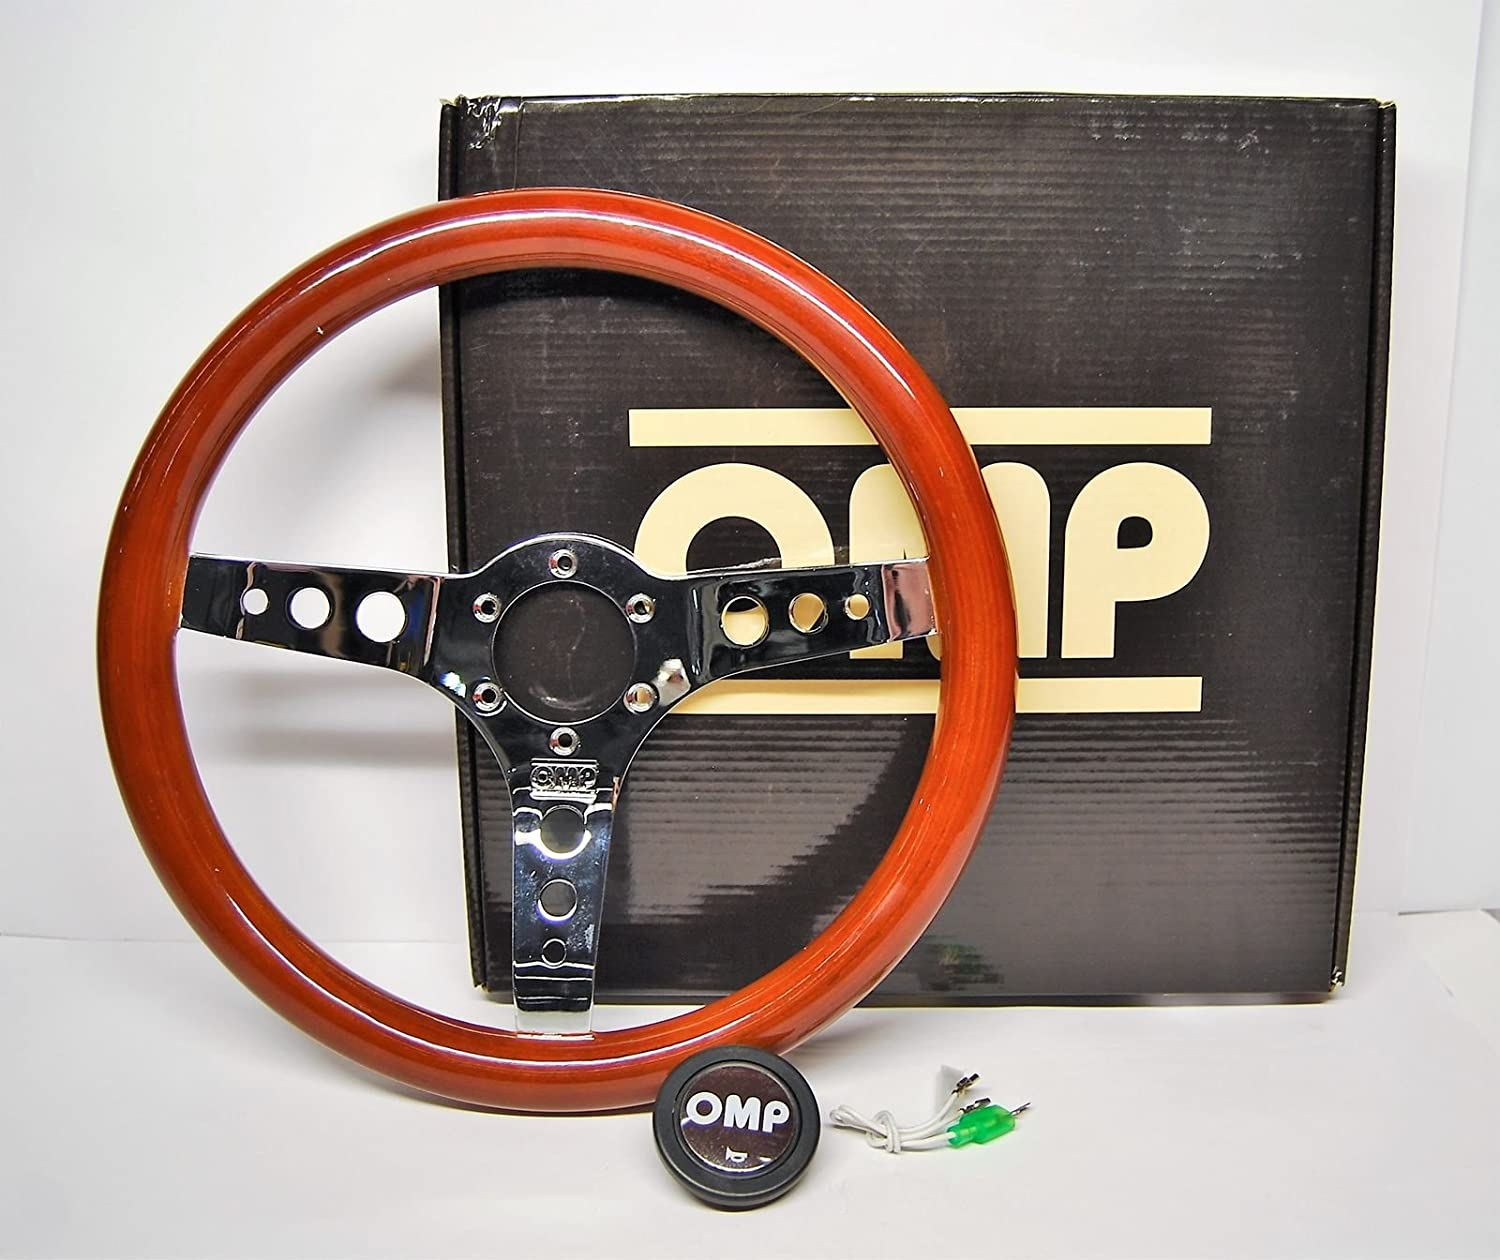 OMP Ompod/2023/Le Mugello Wooden Steering Wheel, Diameter 360  mm, Single-Coloured, Diá metro 360 mm Diameter 360 mm Diámetro 360 mm